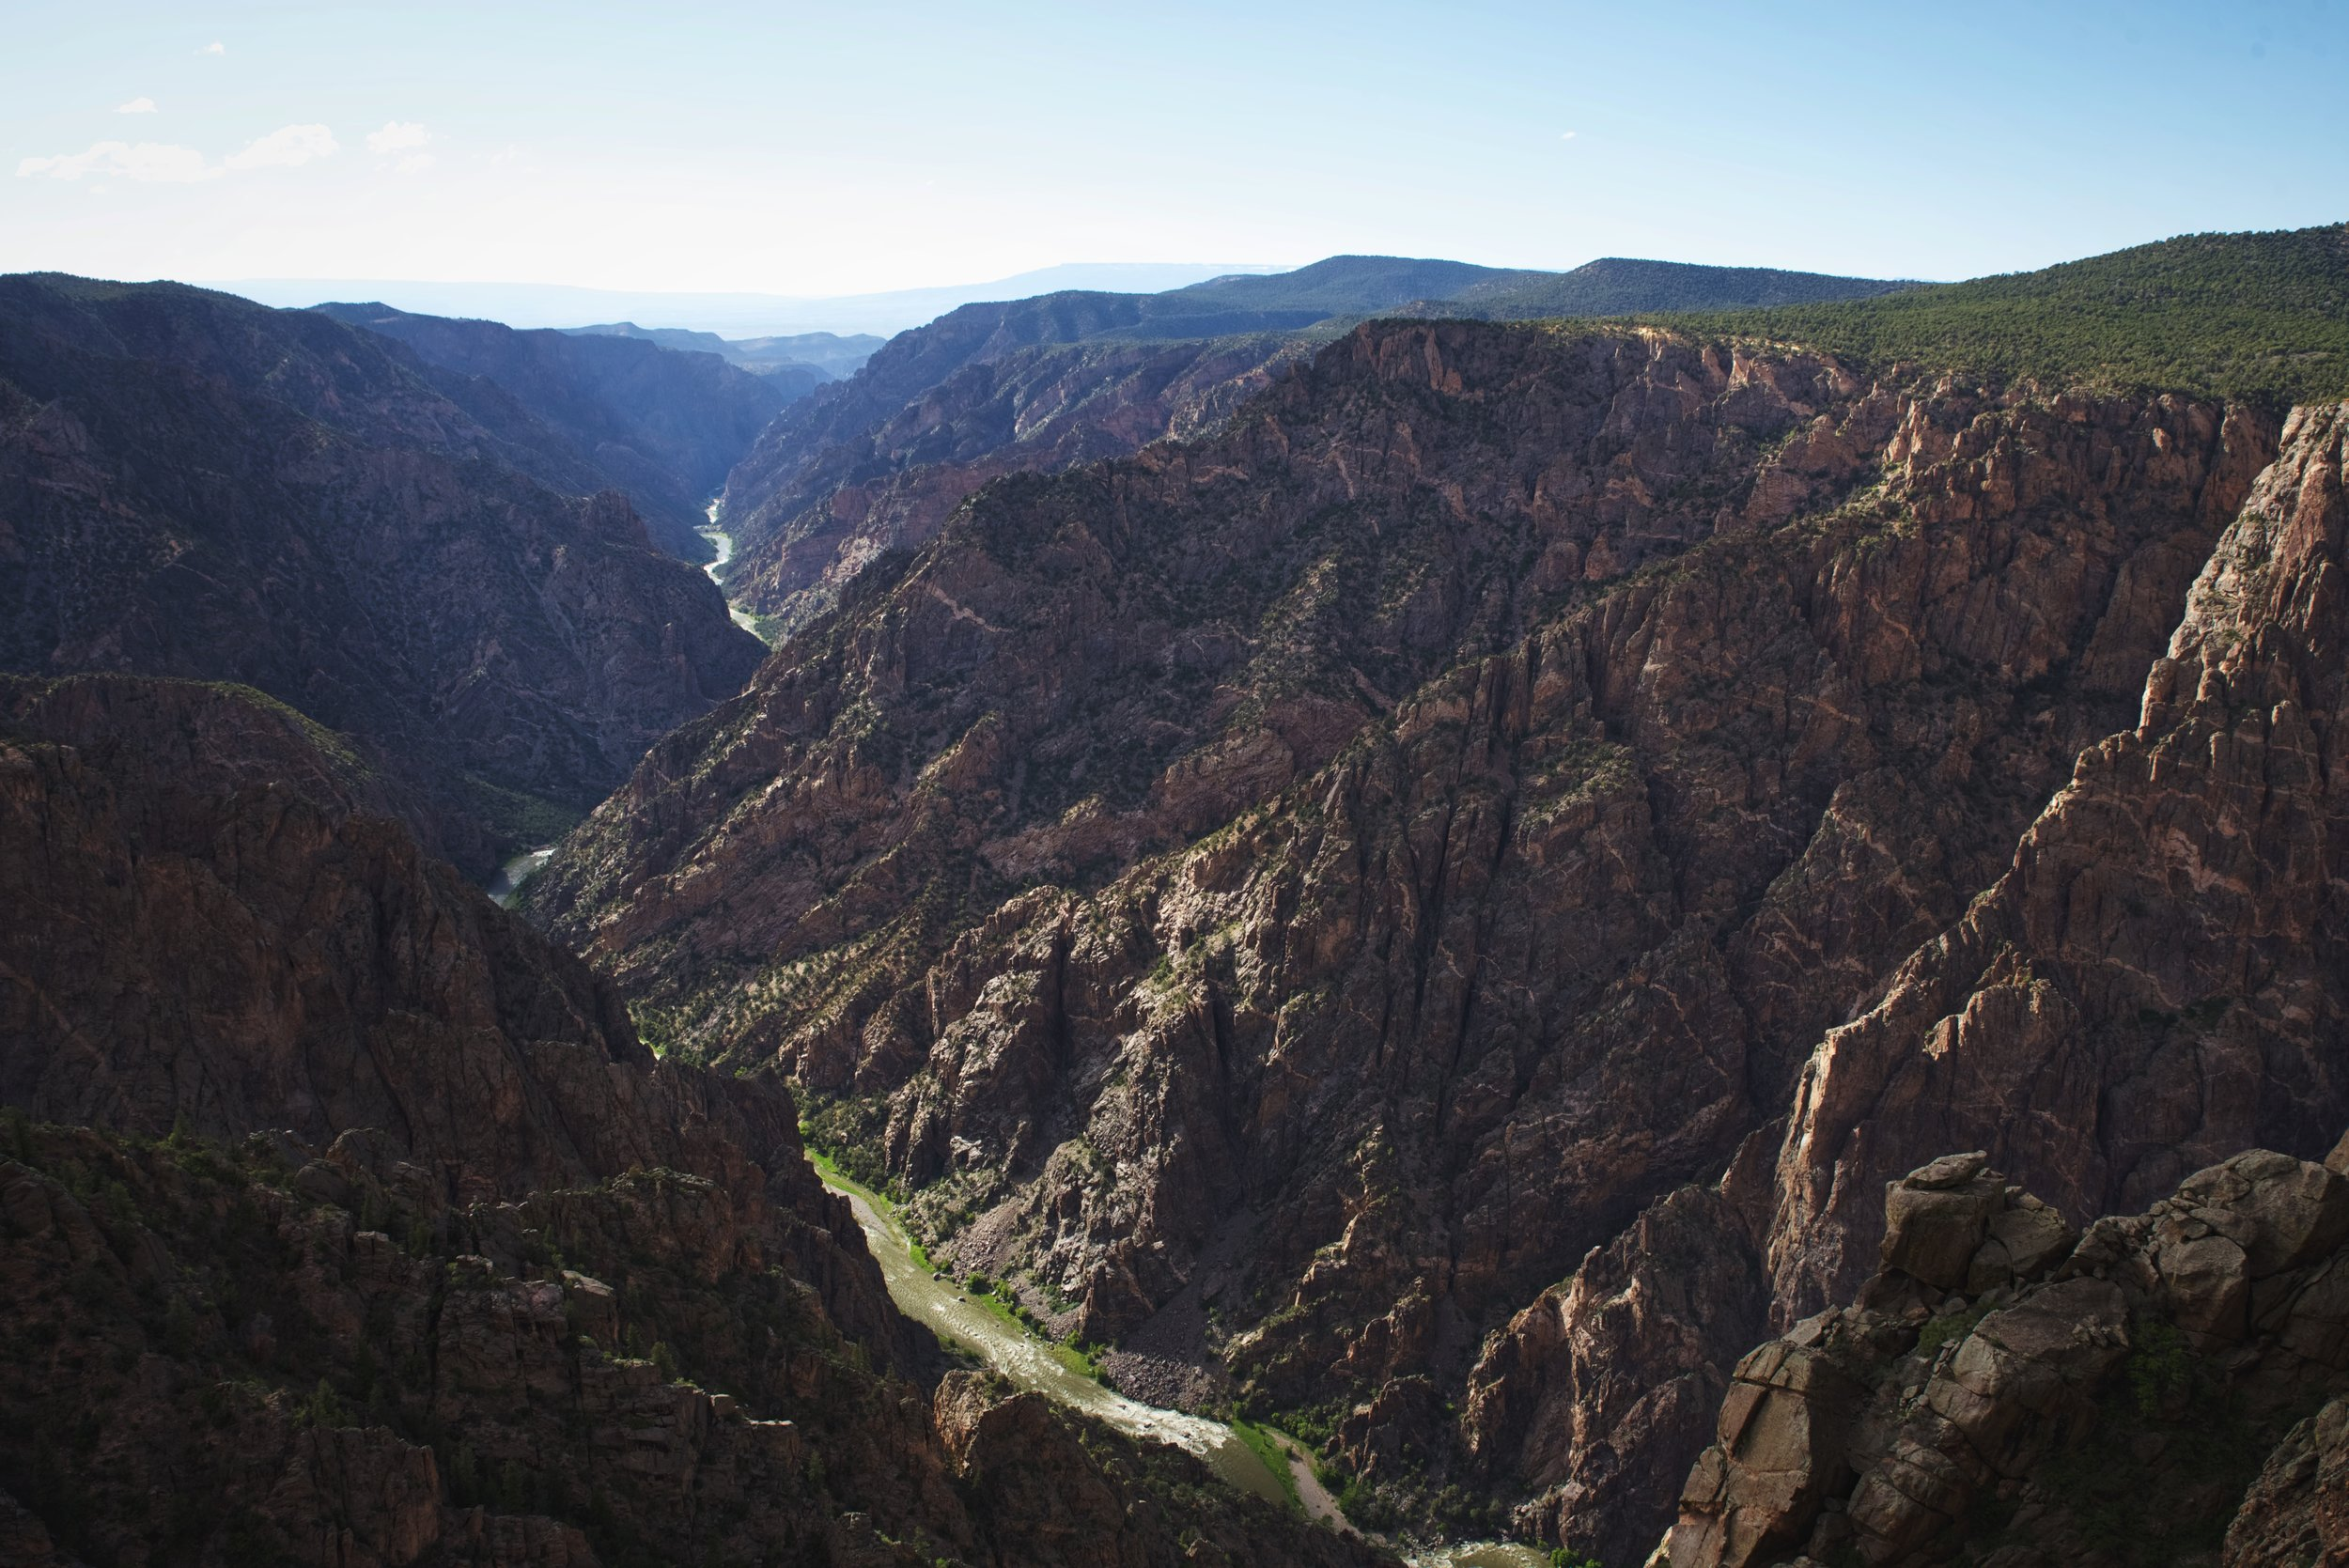 The Black Canyon of the Gunnison earned it's name, because of the dark shadows on the canyon walls.